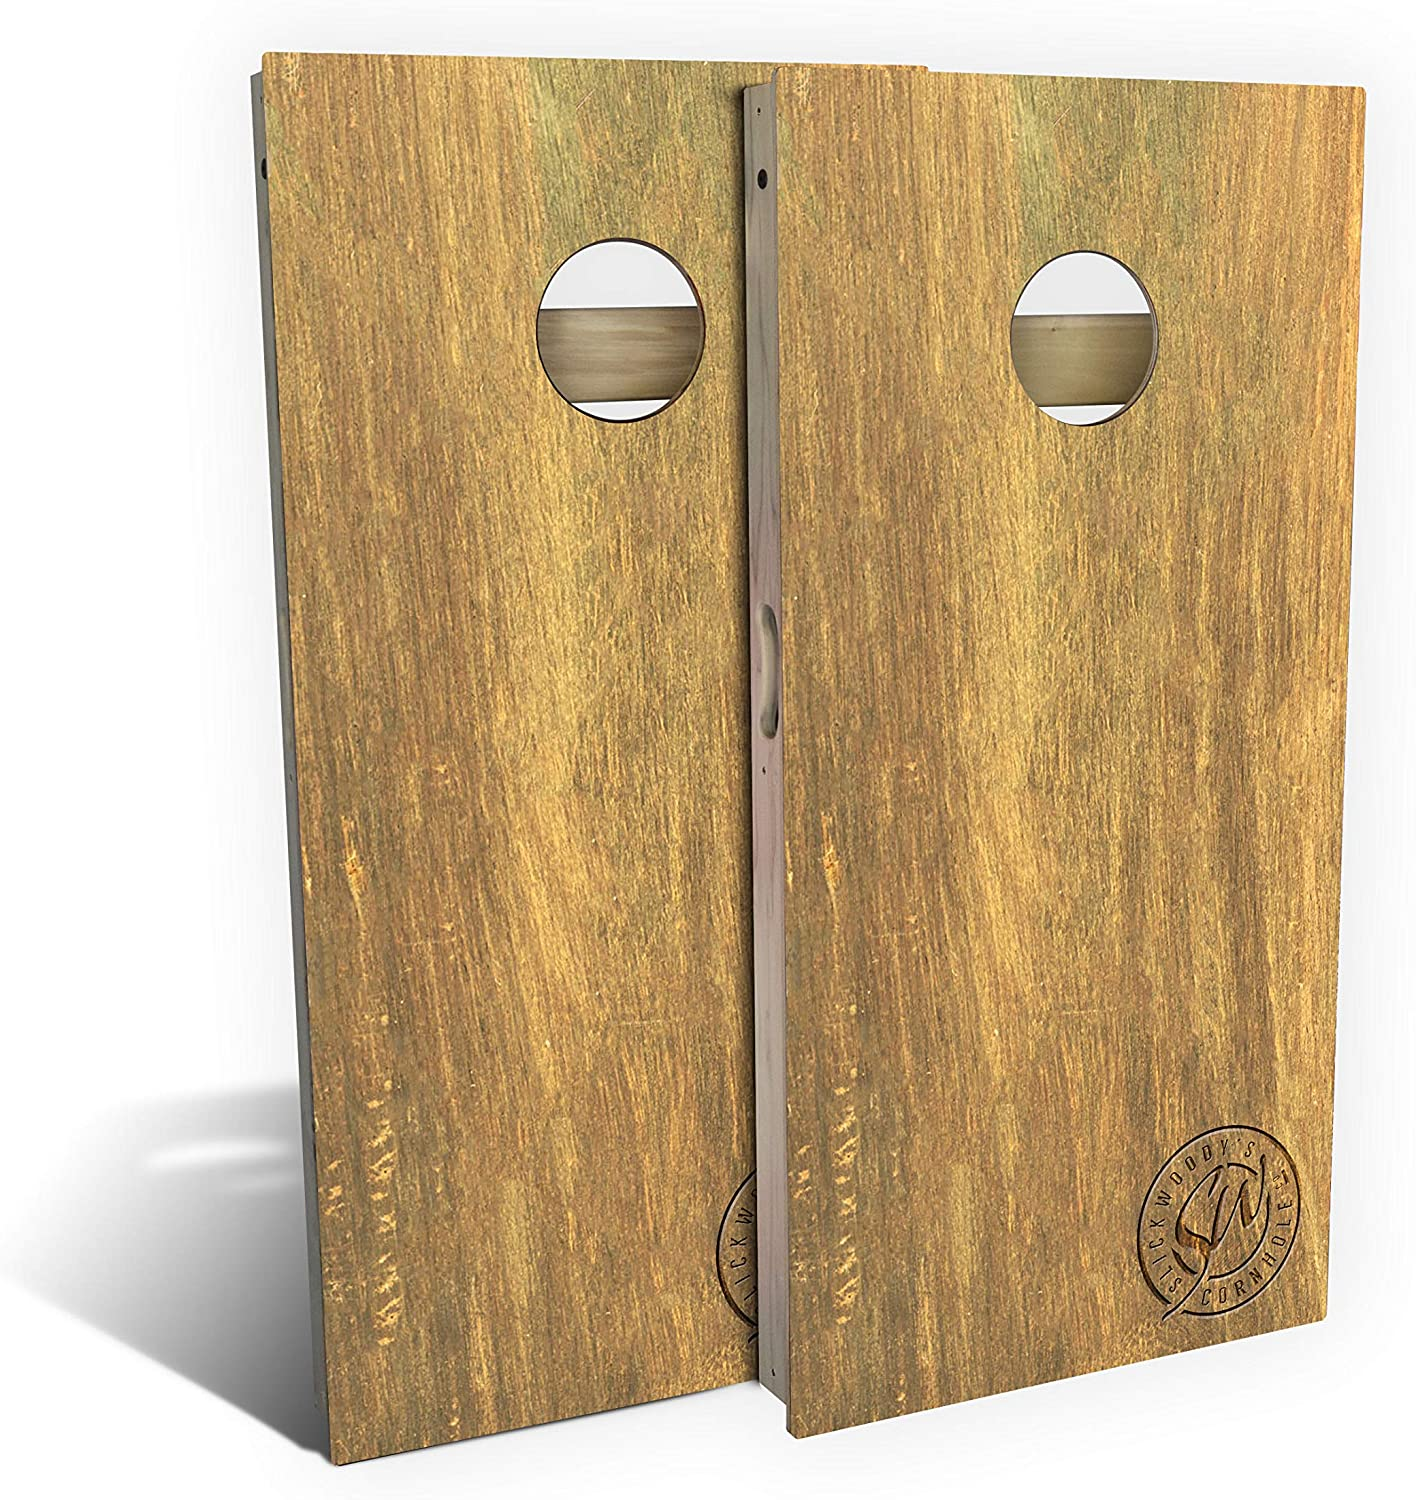 Slick Woody's Siamese Rosewood Free shipping on posting List price reviews Cornhole with Set 8 Bags